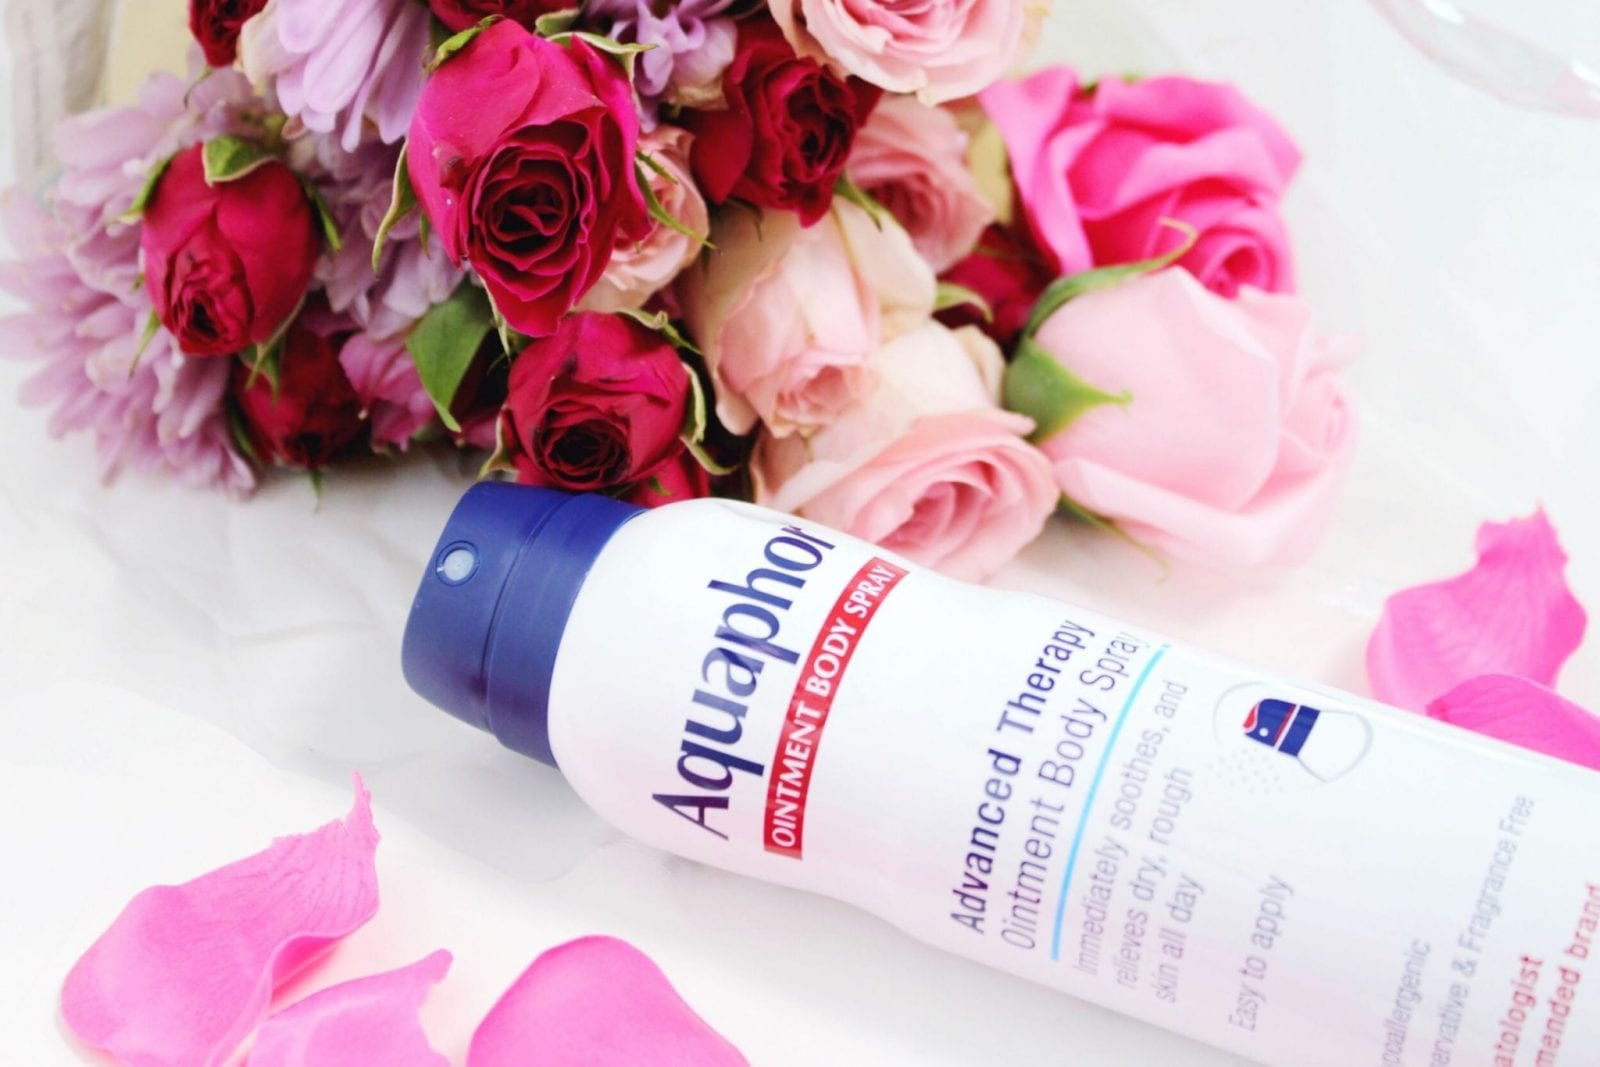 AquaphorⓇ Ointment Body Spray is in the center on its side, of the photo surrounded by flowers.